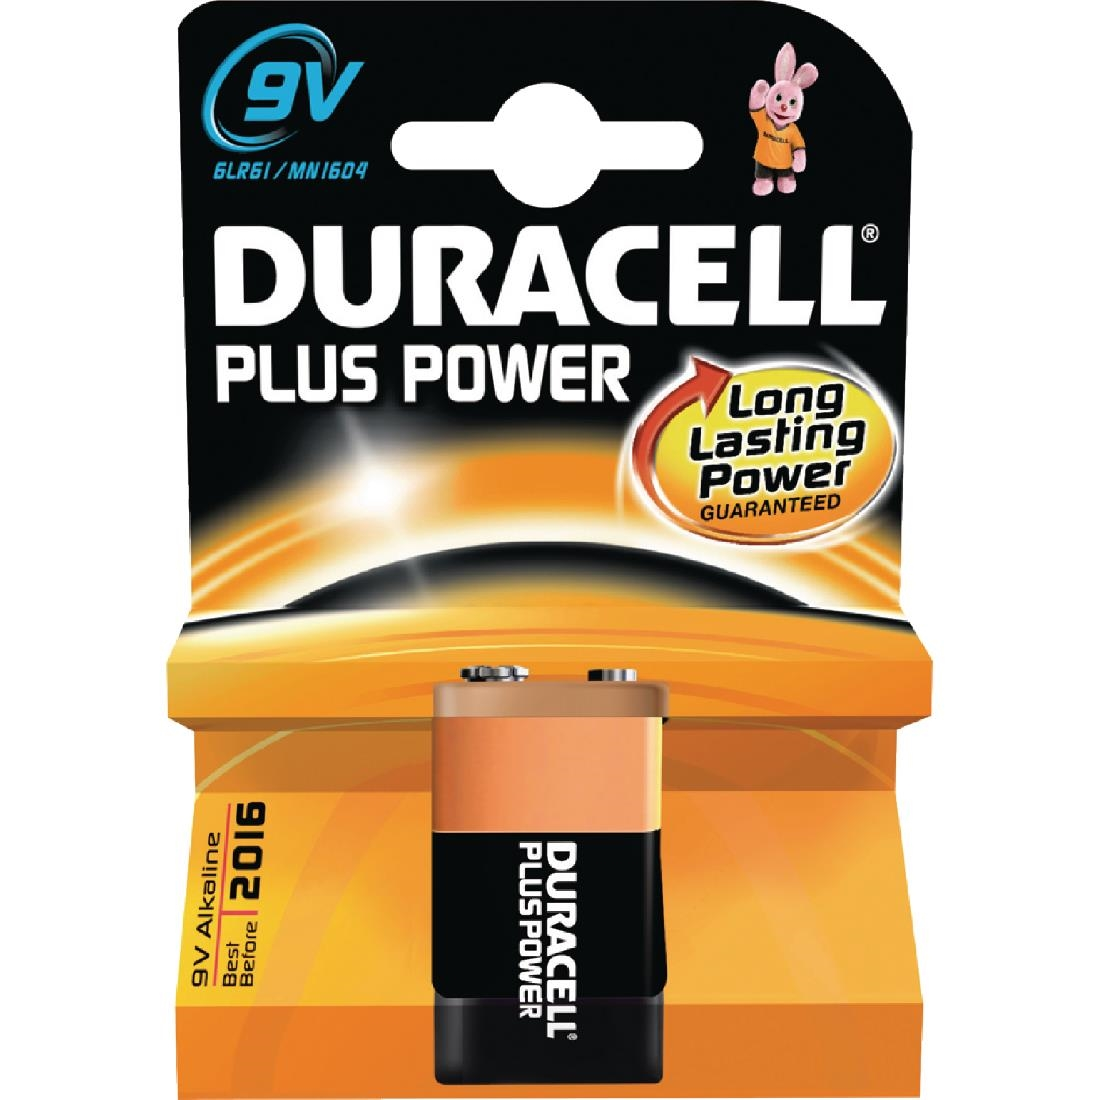 Image of Duracell 9V Battery